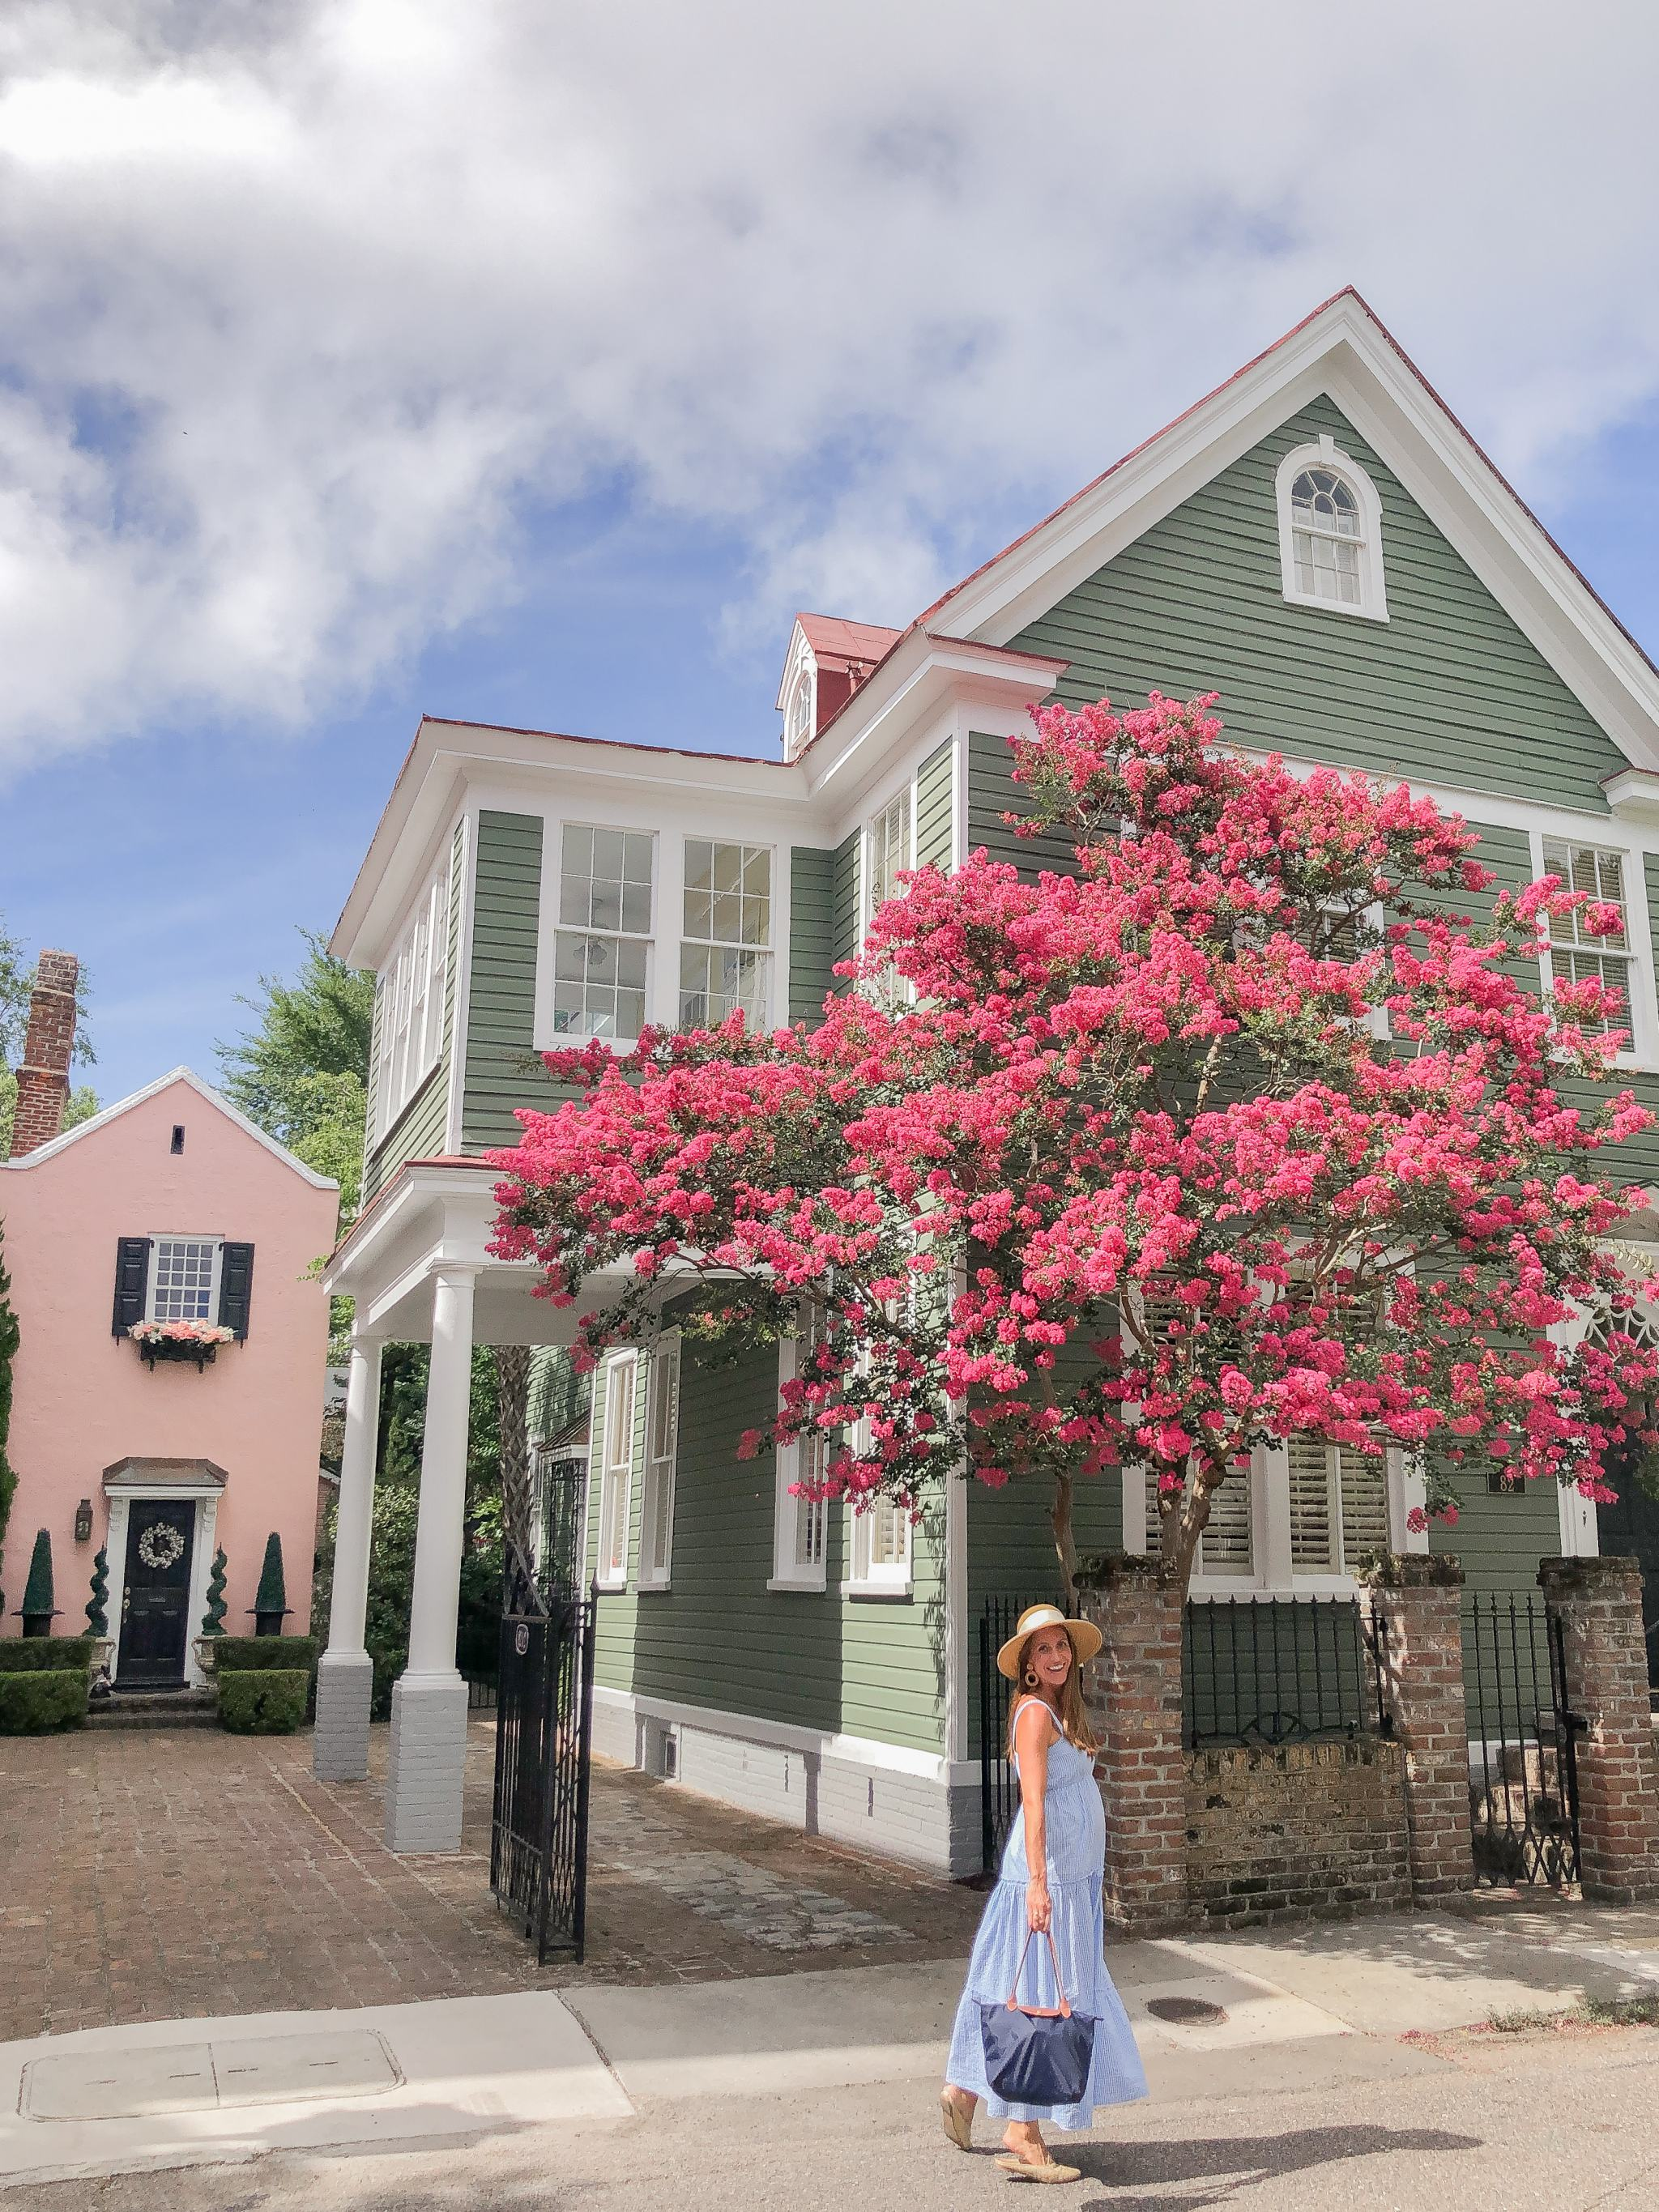 madison mathews maxi dress - tuckernuck packable bow sun hat - things to do in charleston - crepe myrtles in charleston - pink house in charleston - charleston pink house